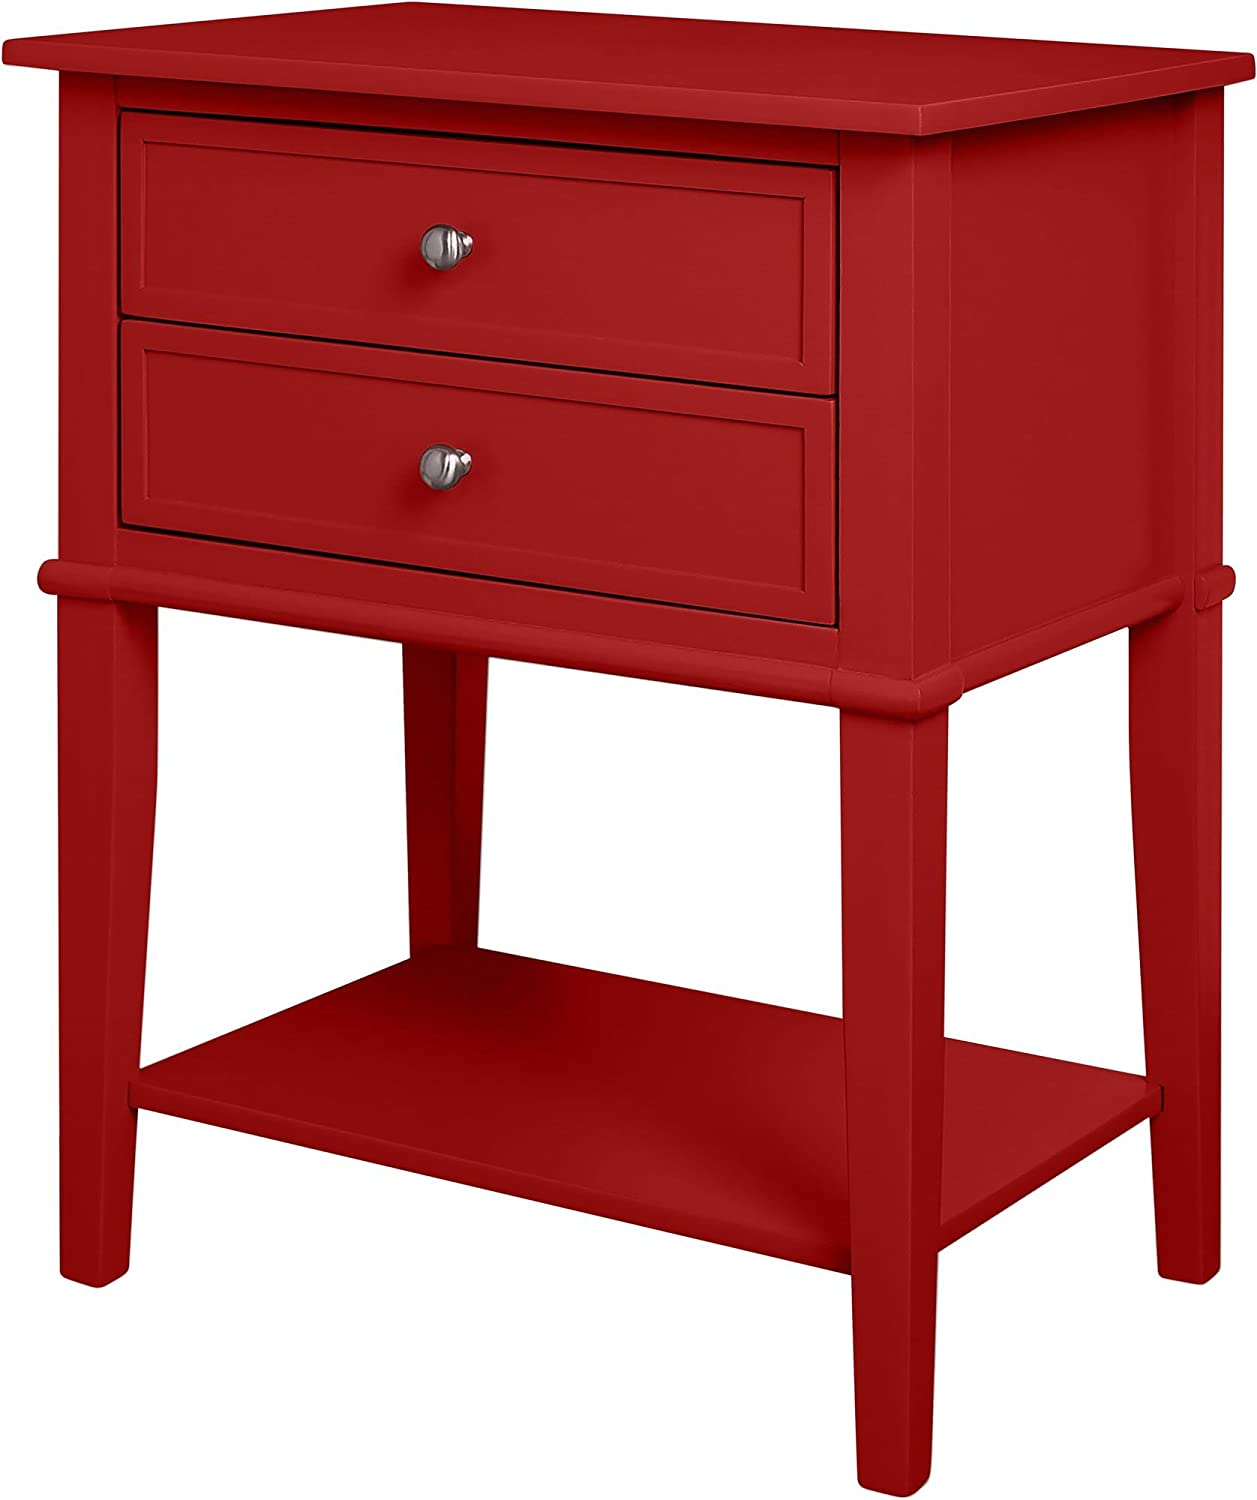 - Ameriwood Home Franklin Accent Table With 2 Drawers, Red: Amazon